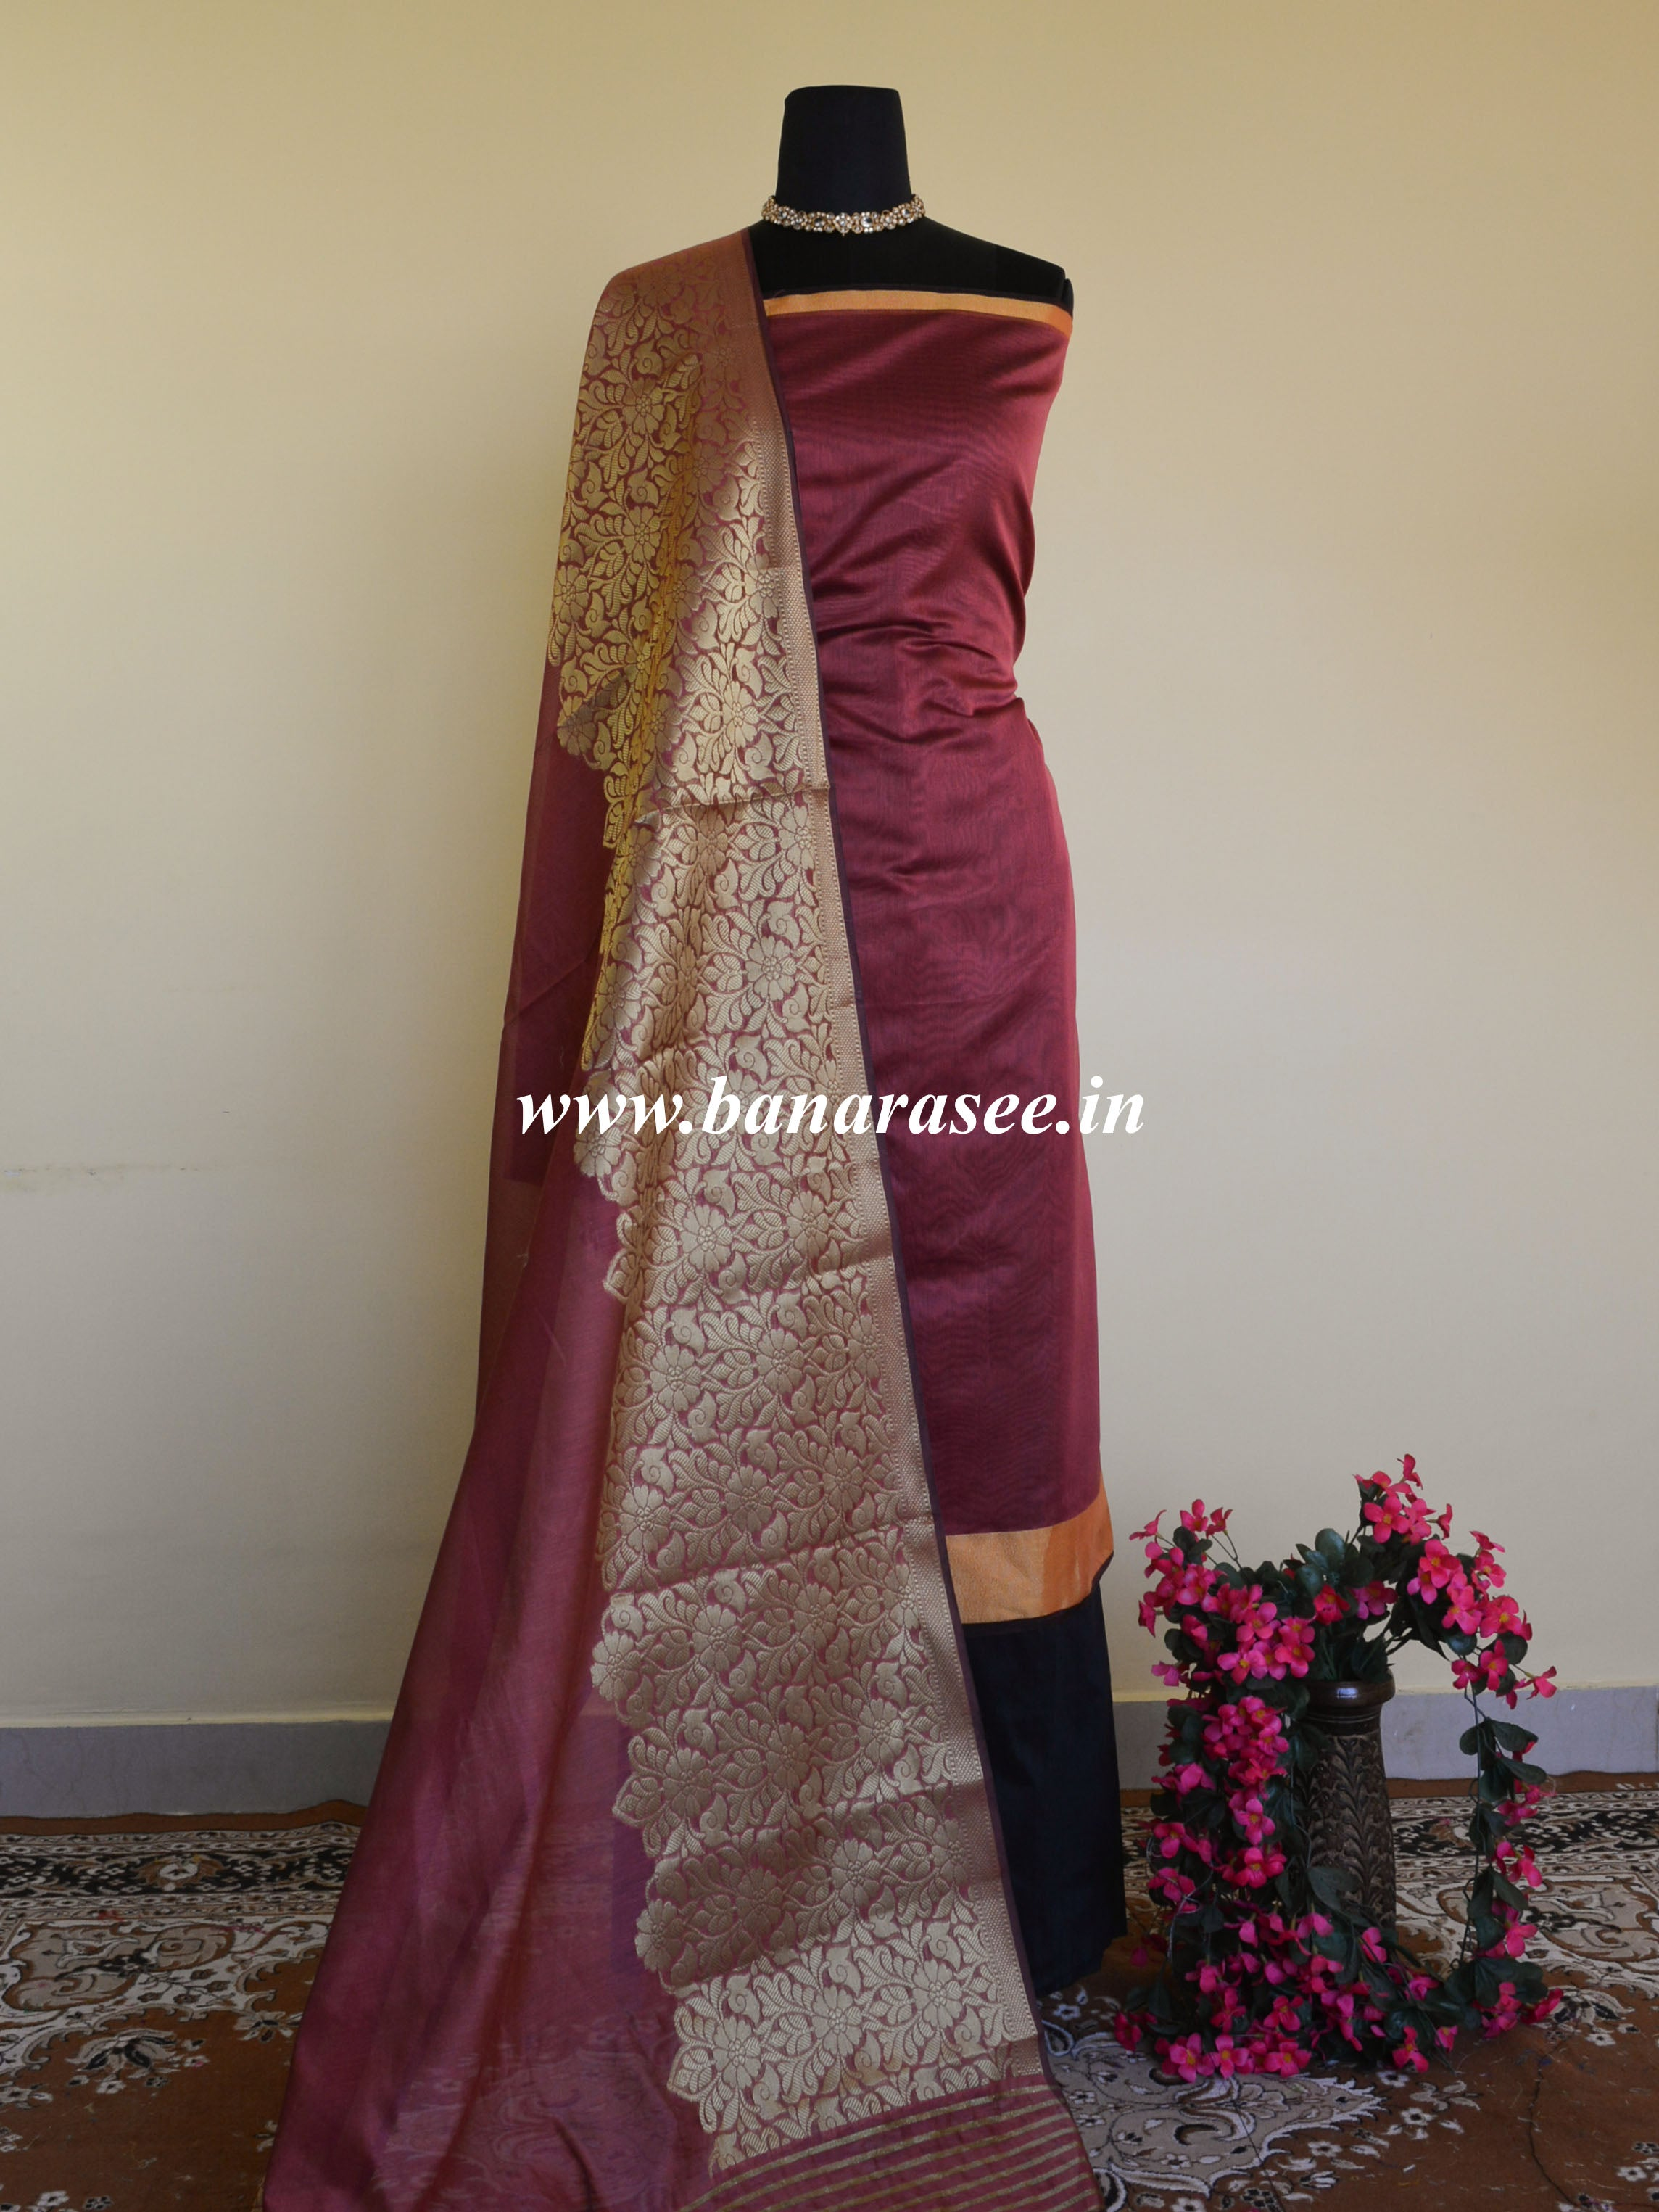 Banarasee Cotton Silk Salwar Kameez With Zari Border & Dupatta-Maroon